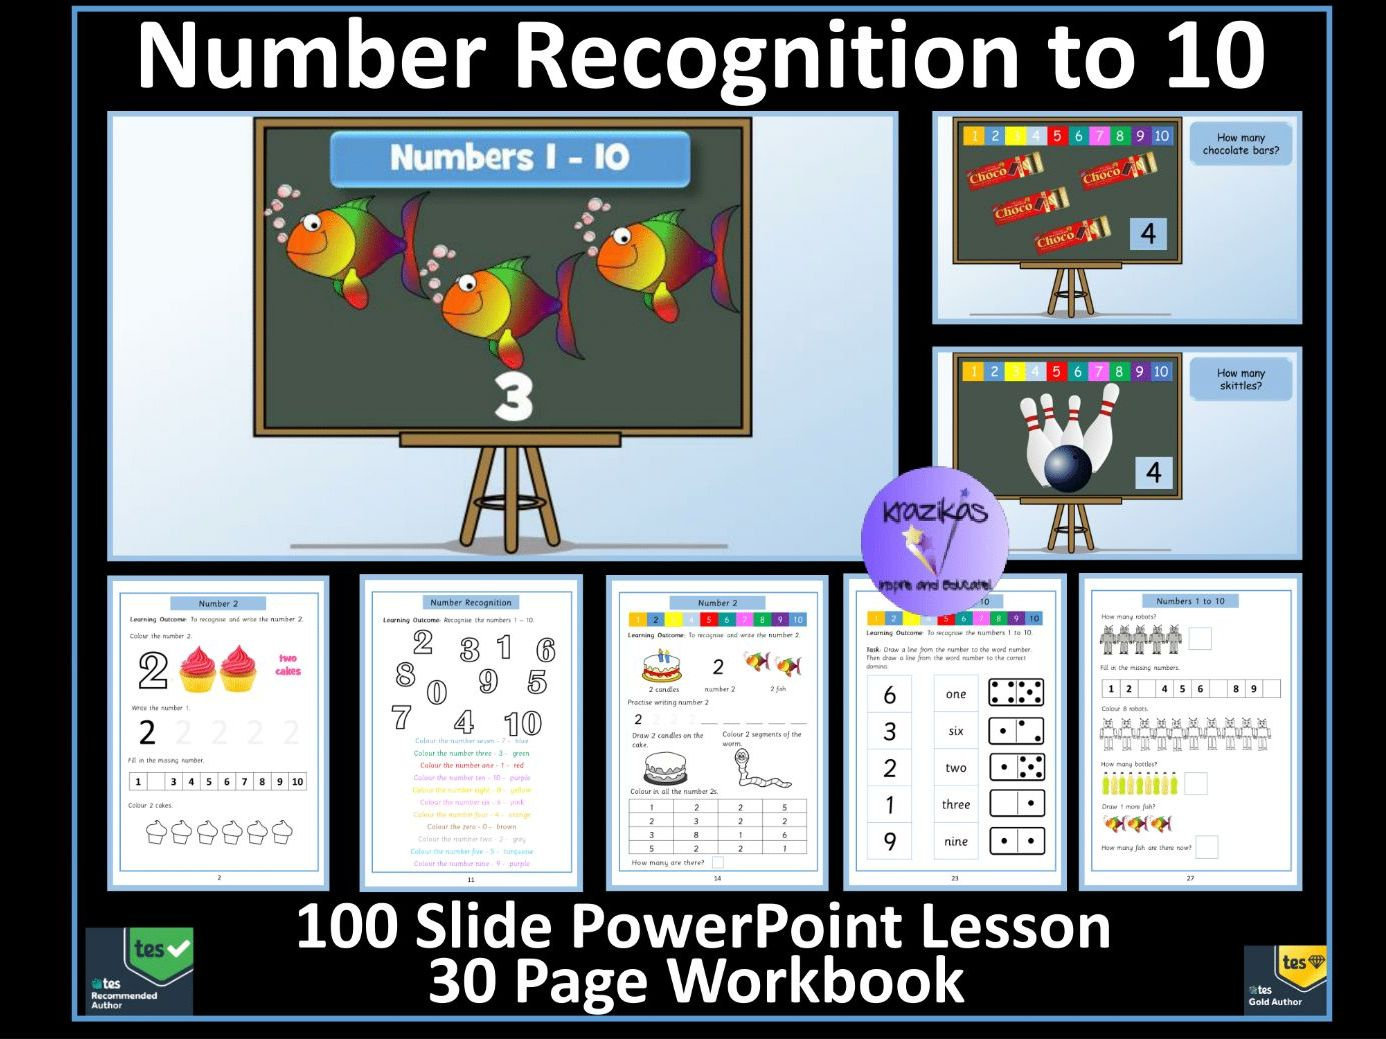 Number Recognition: Numbers 1 to 10 - PowerPoint Lesson and Workbook: